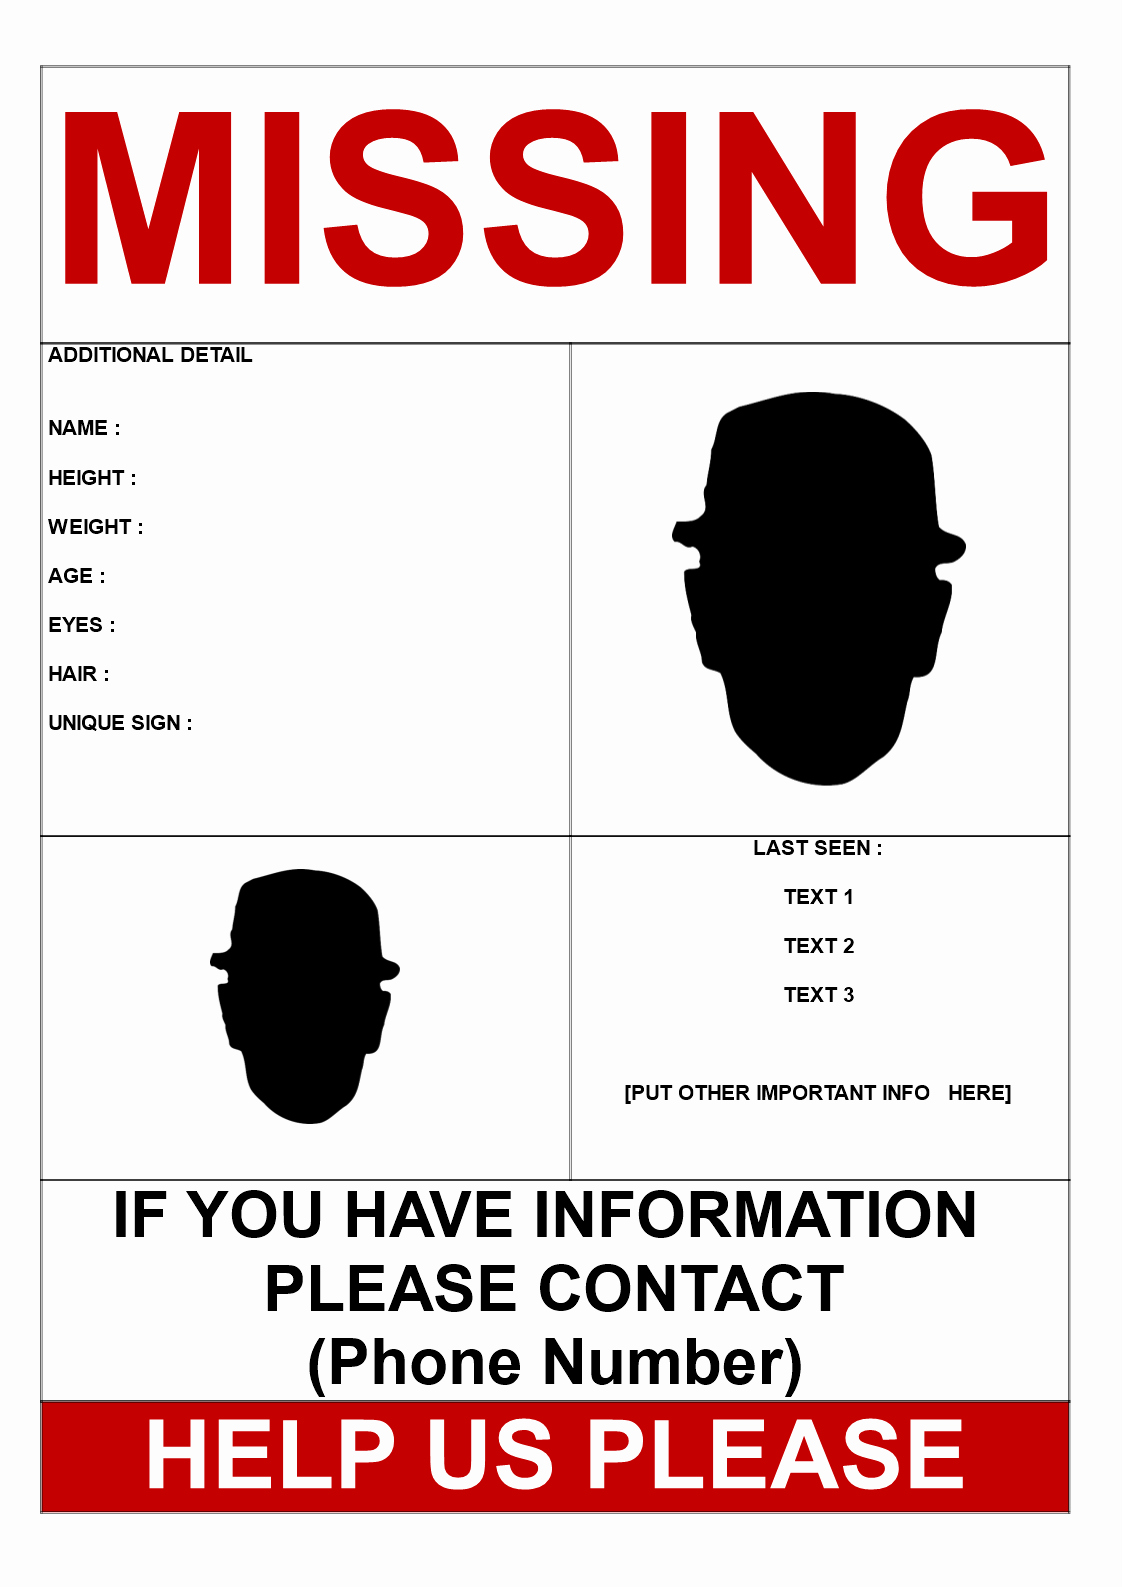 Missing Person Poster Template Inspirational Missing Person Template 2 Pictures Download This Find